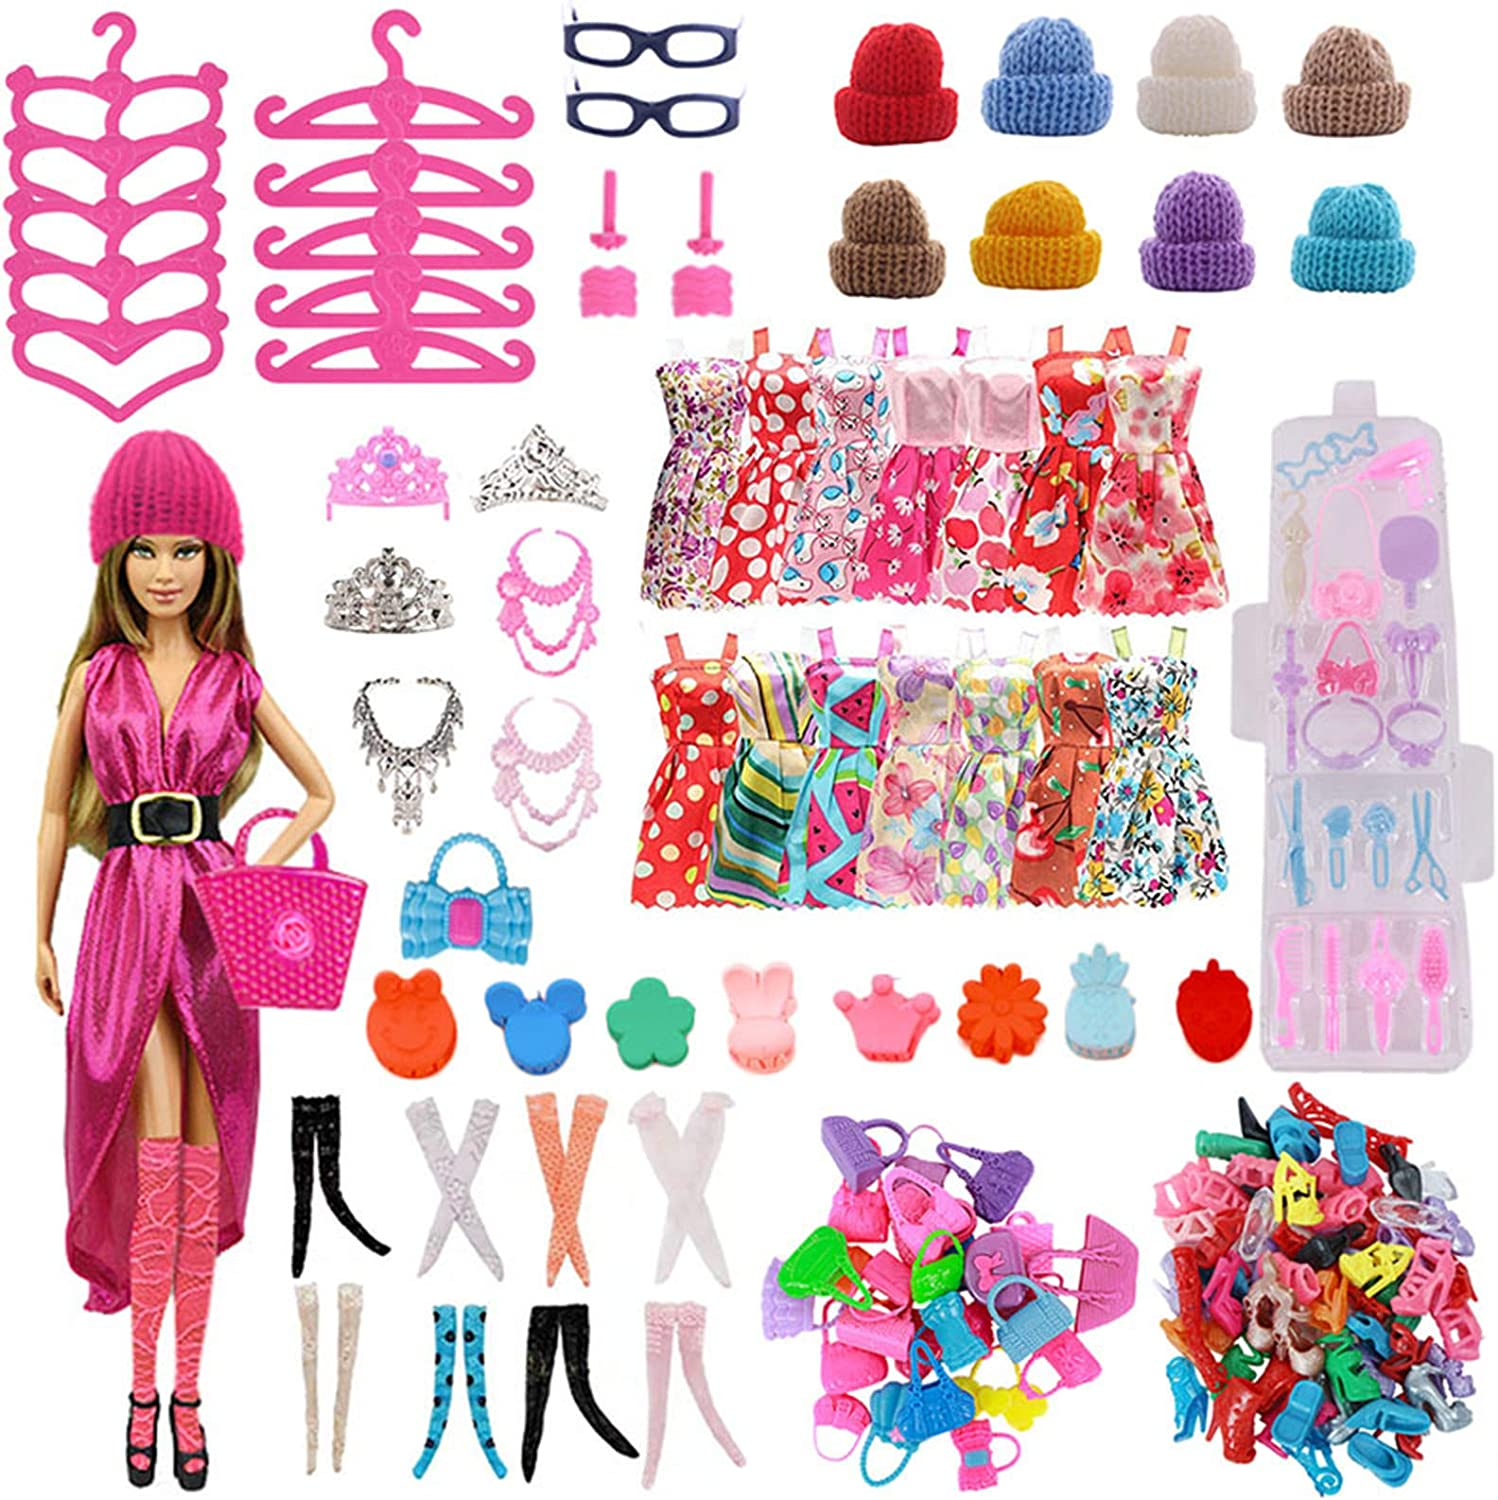 ZWSISU Bargain sale 66PCS Doll Clothes and Decoration 11 Popularity Accessories Fit